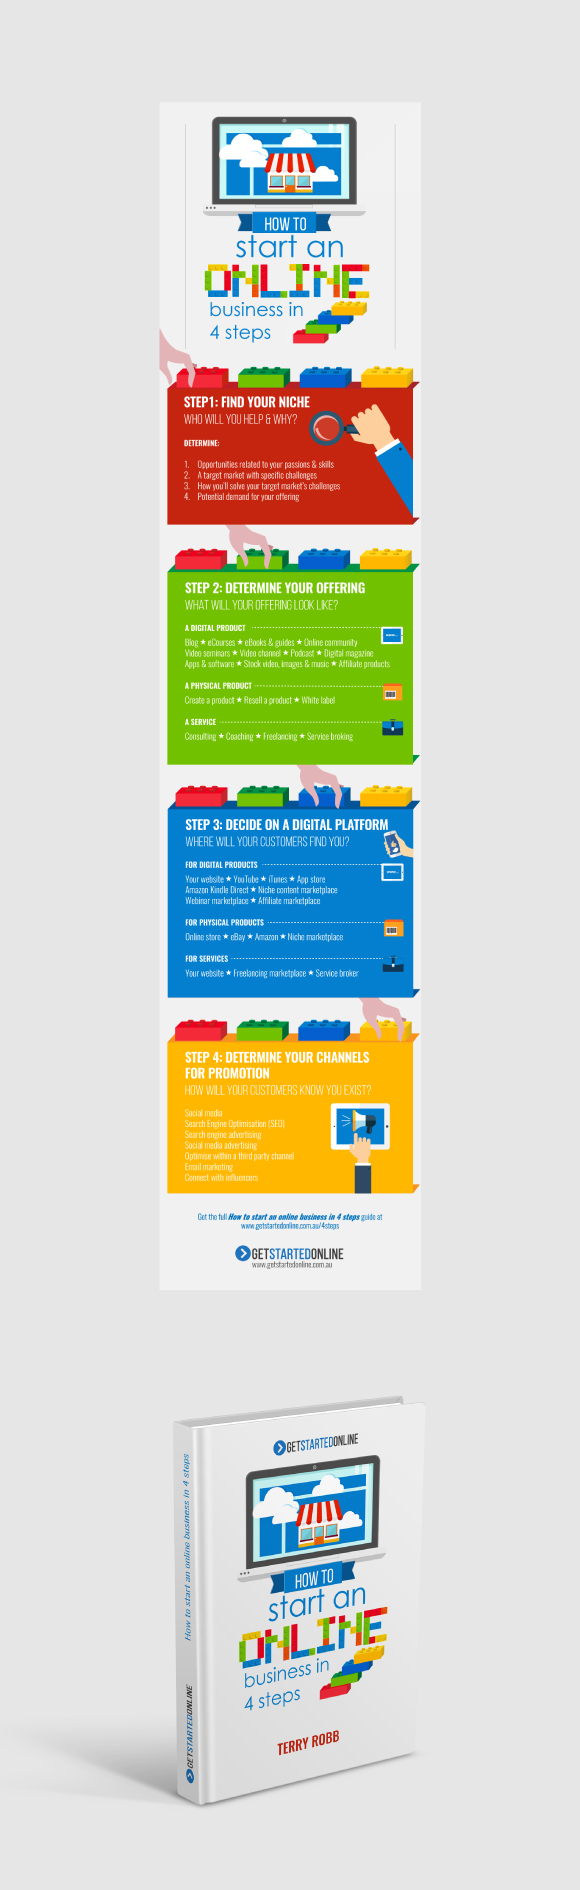 how to get started online infographic